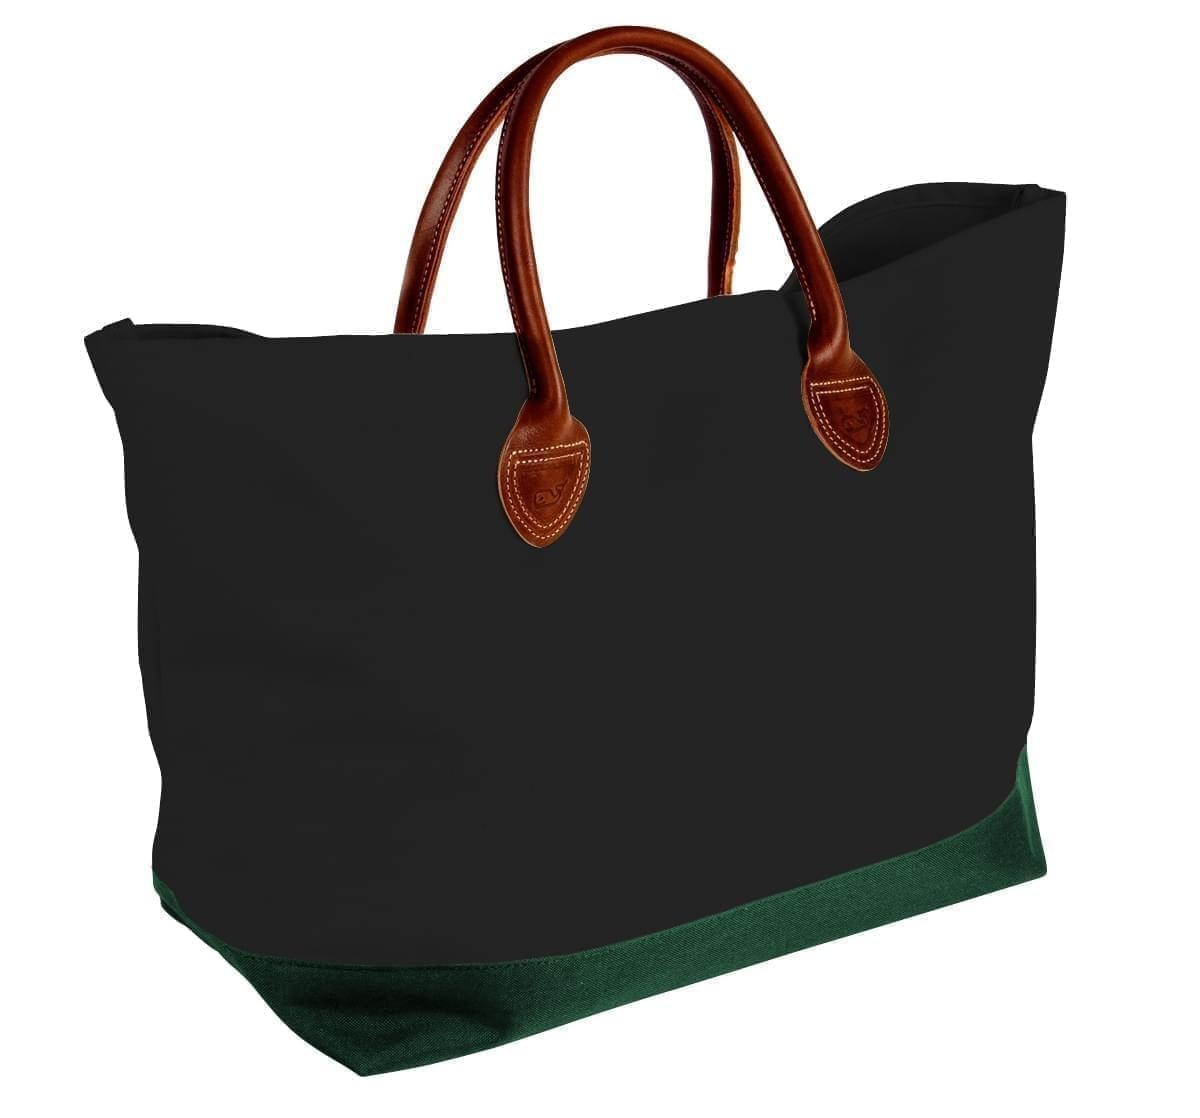 USA Made Canvas Leather Handle Totes, Black-Hunter Green, 10899-VH9